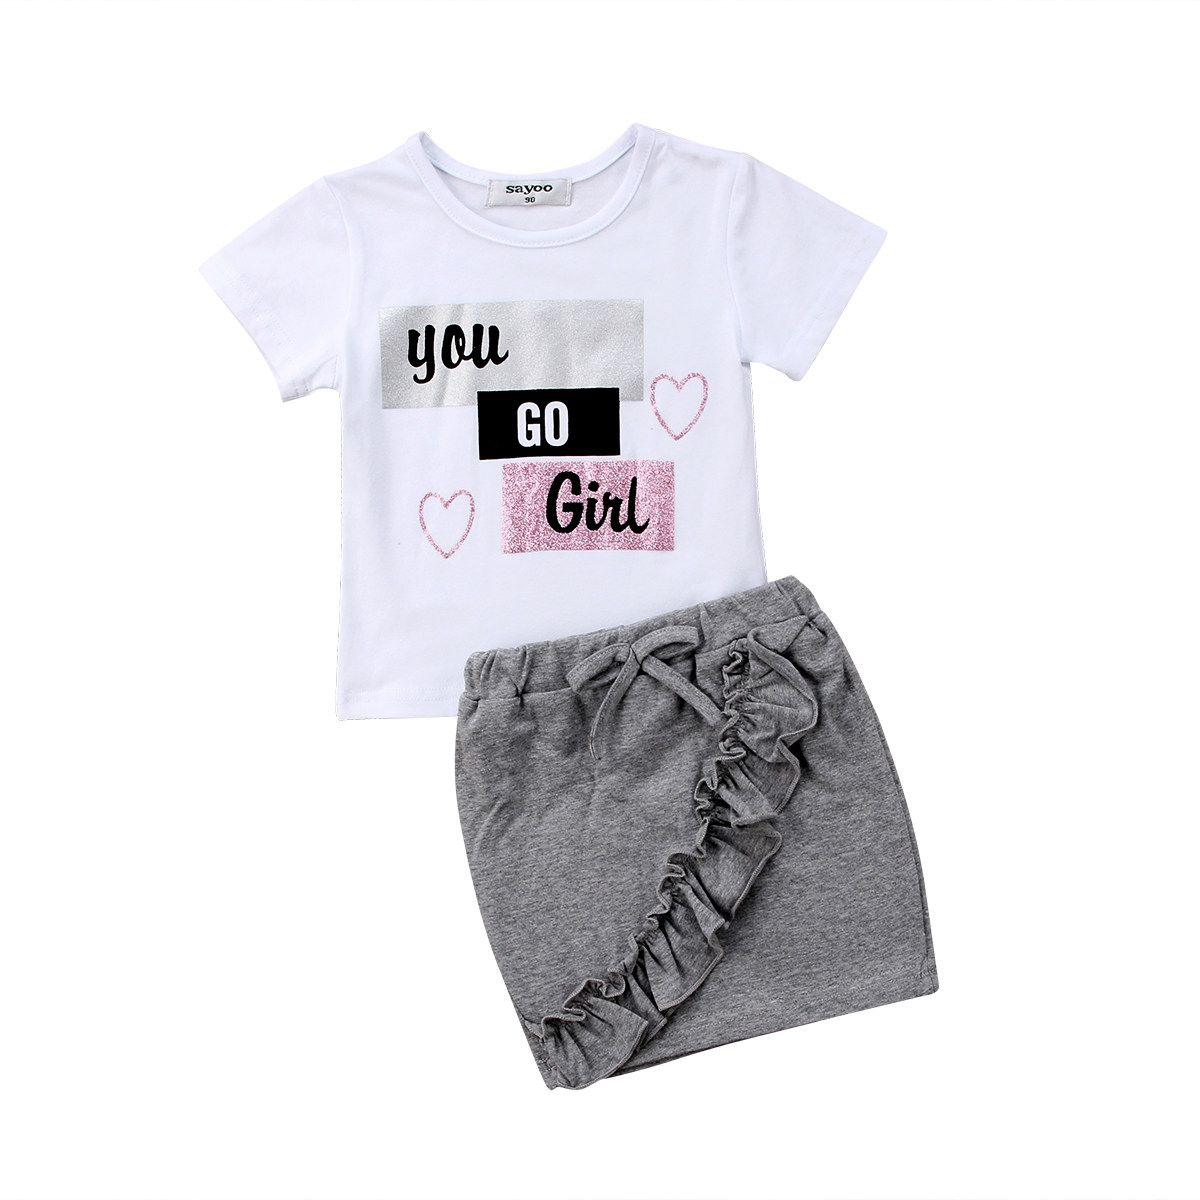 US Toddler Kids Baby Girls T-shirt Vest Tops Shorts Outfits Summer Clothes Set